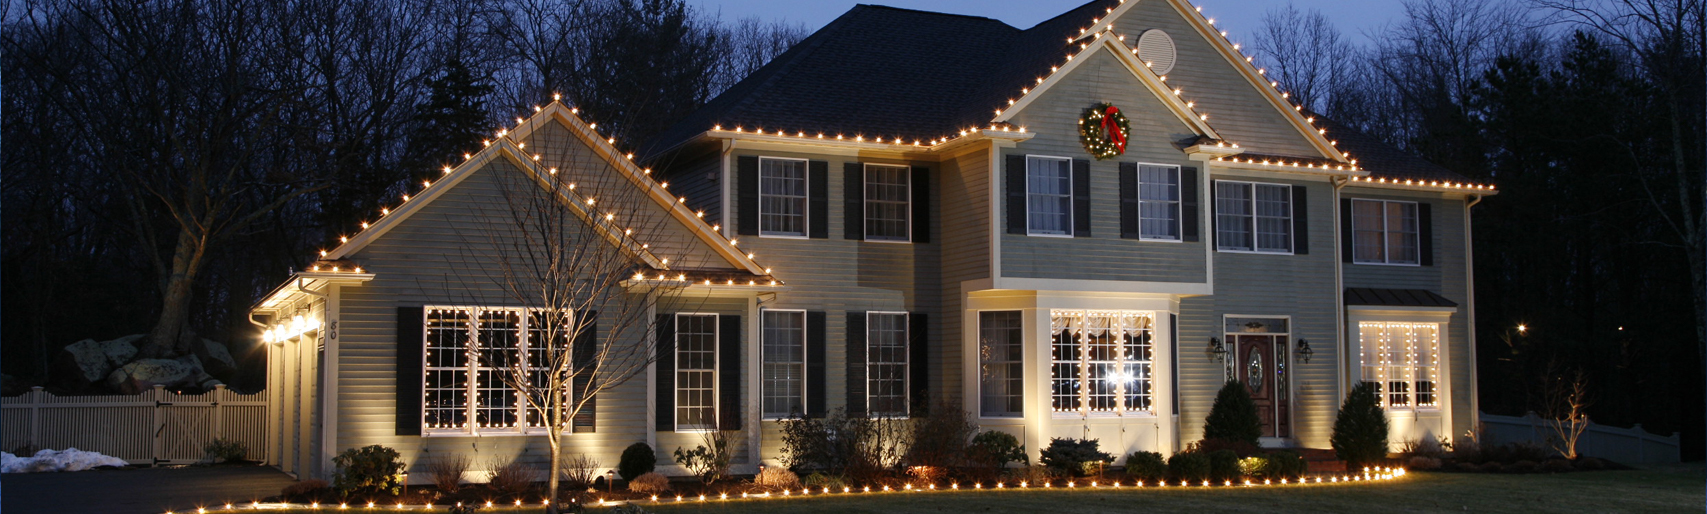 Take the Hassle Out of the Holidays with Christmas Decor by SeaScape.